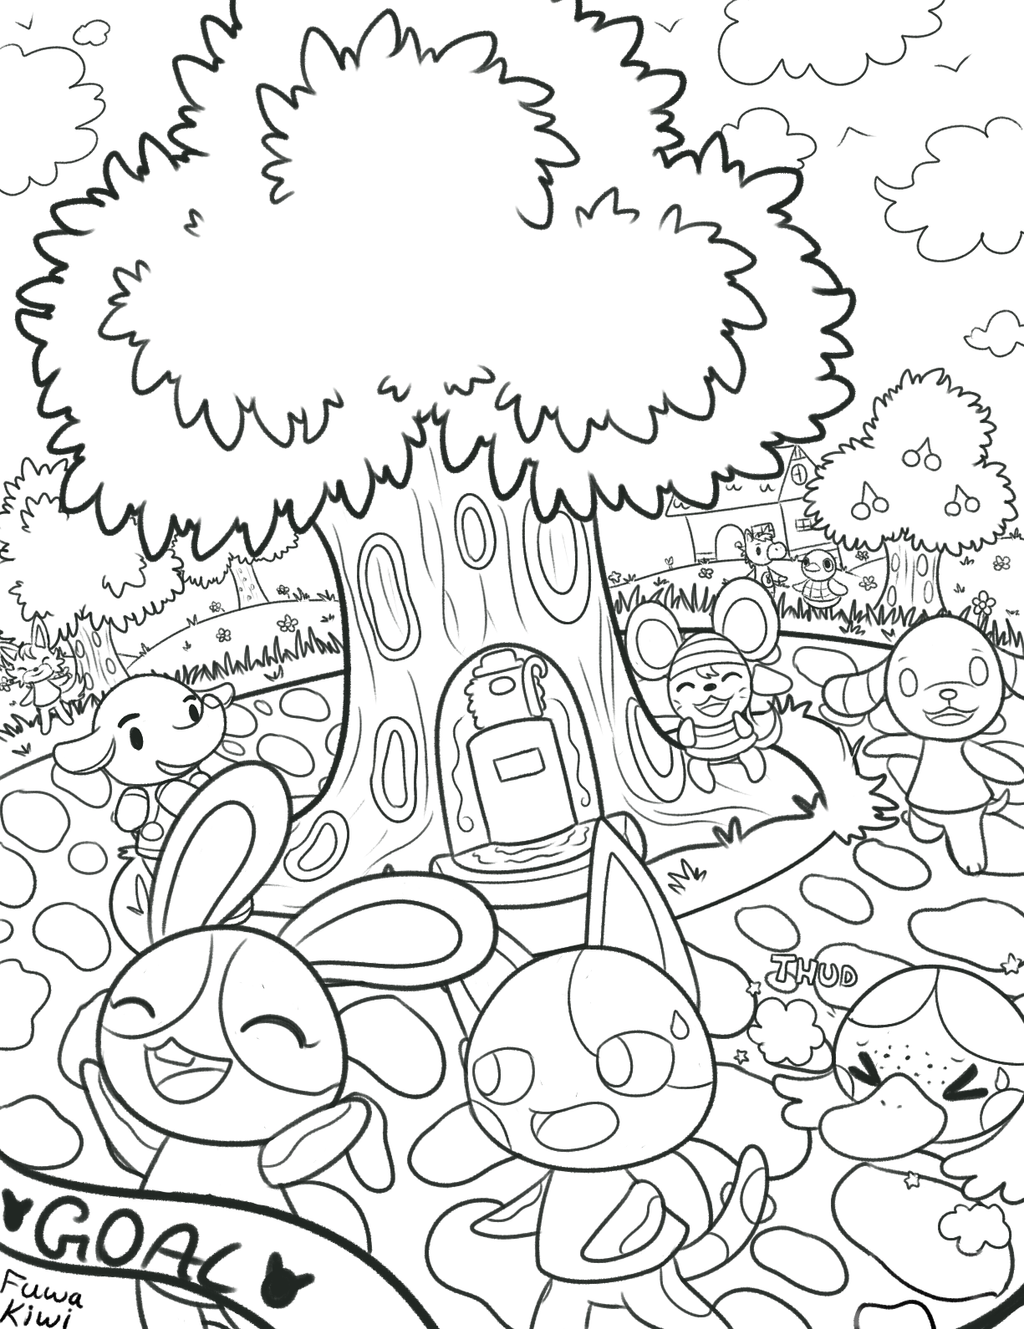 fun at sports fair charity coloring book project by kiwibeagle